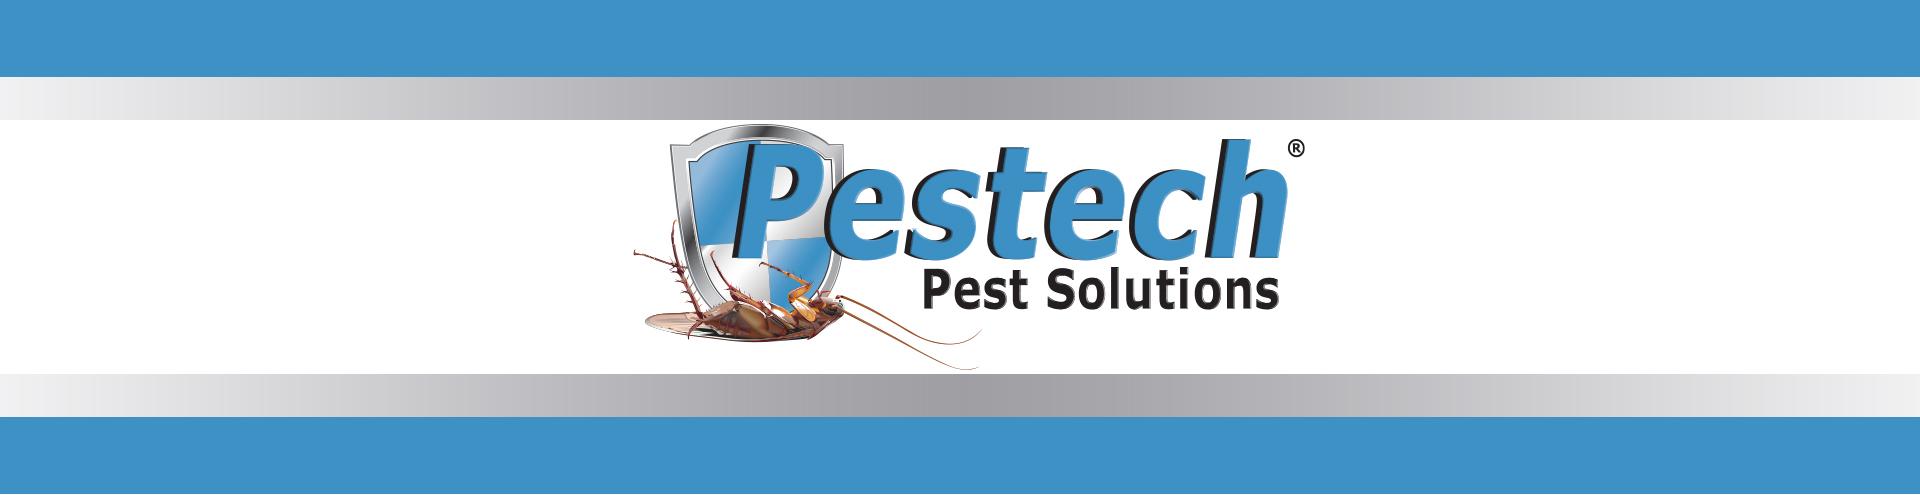 Pestech logo with blue and grey border